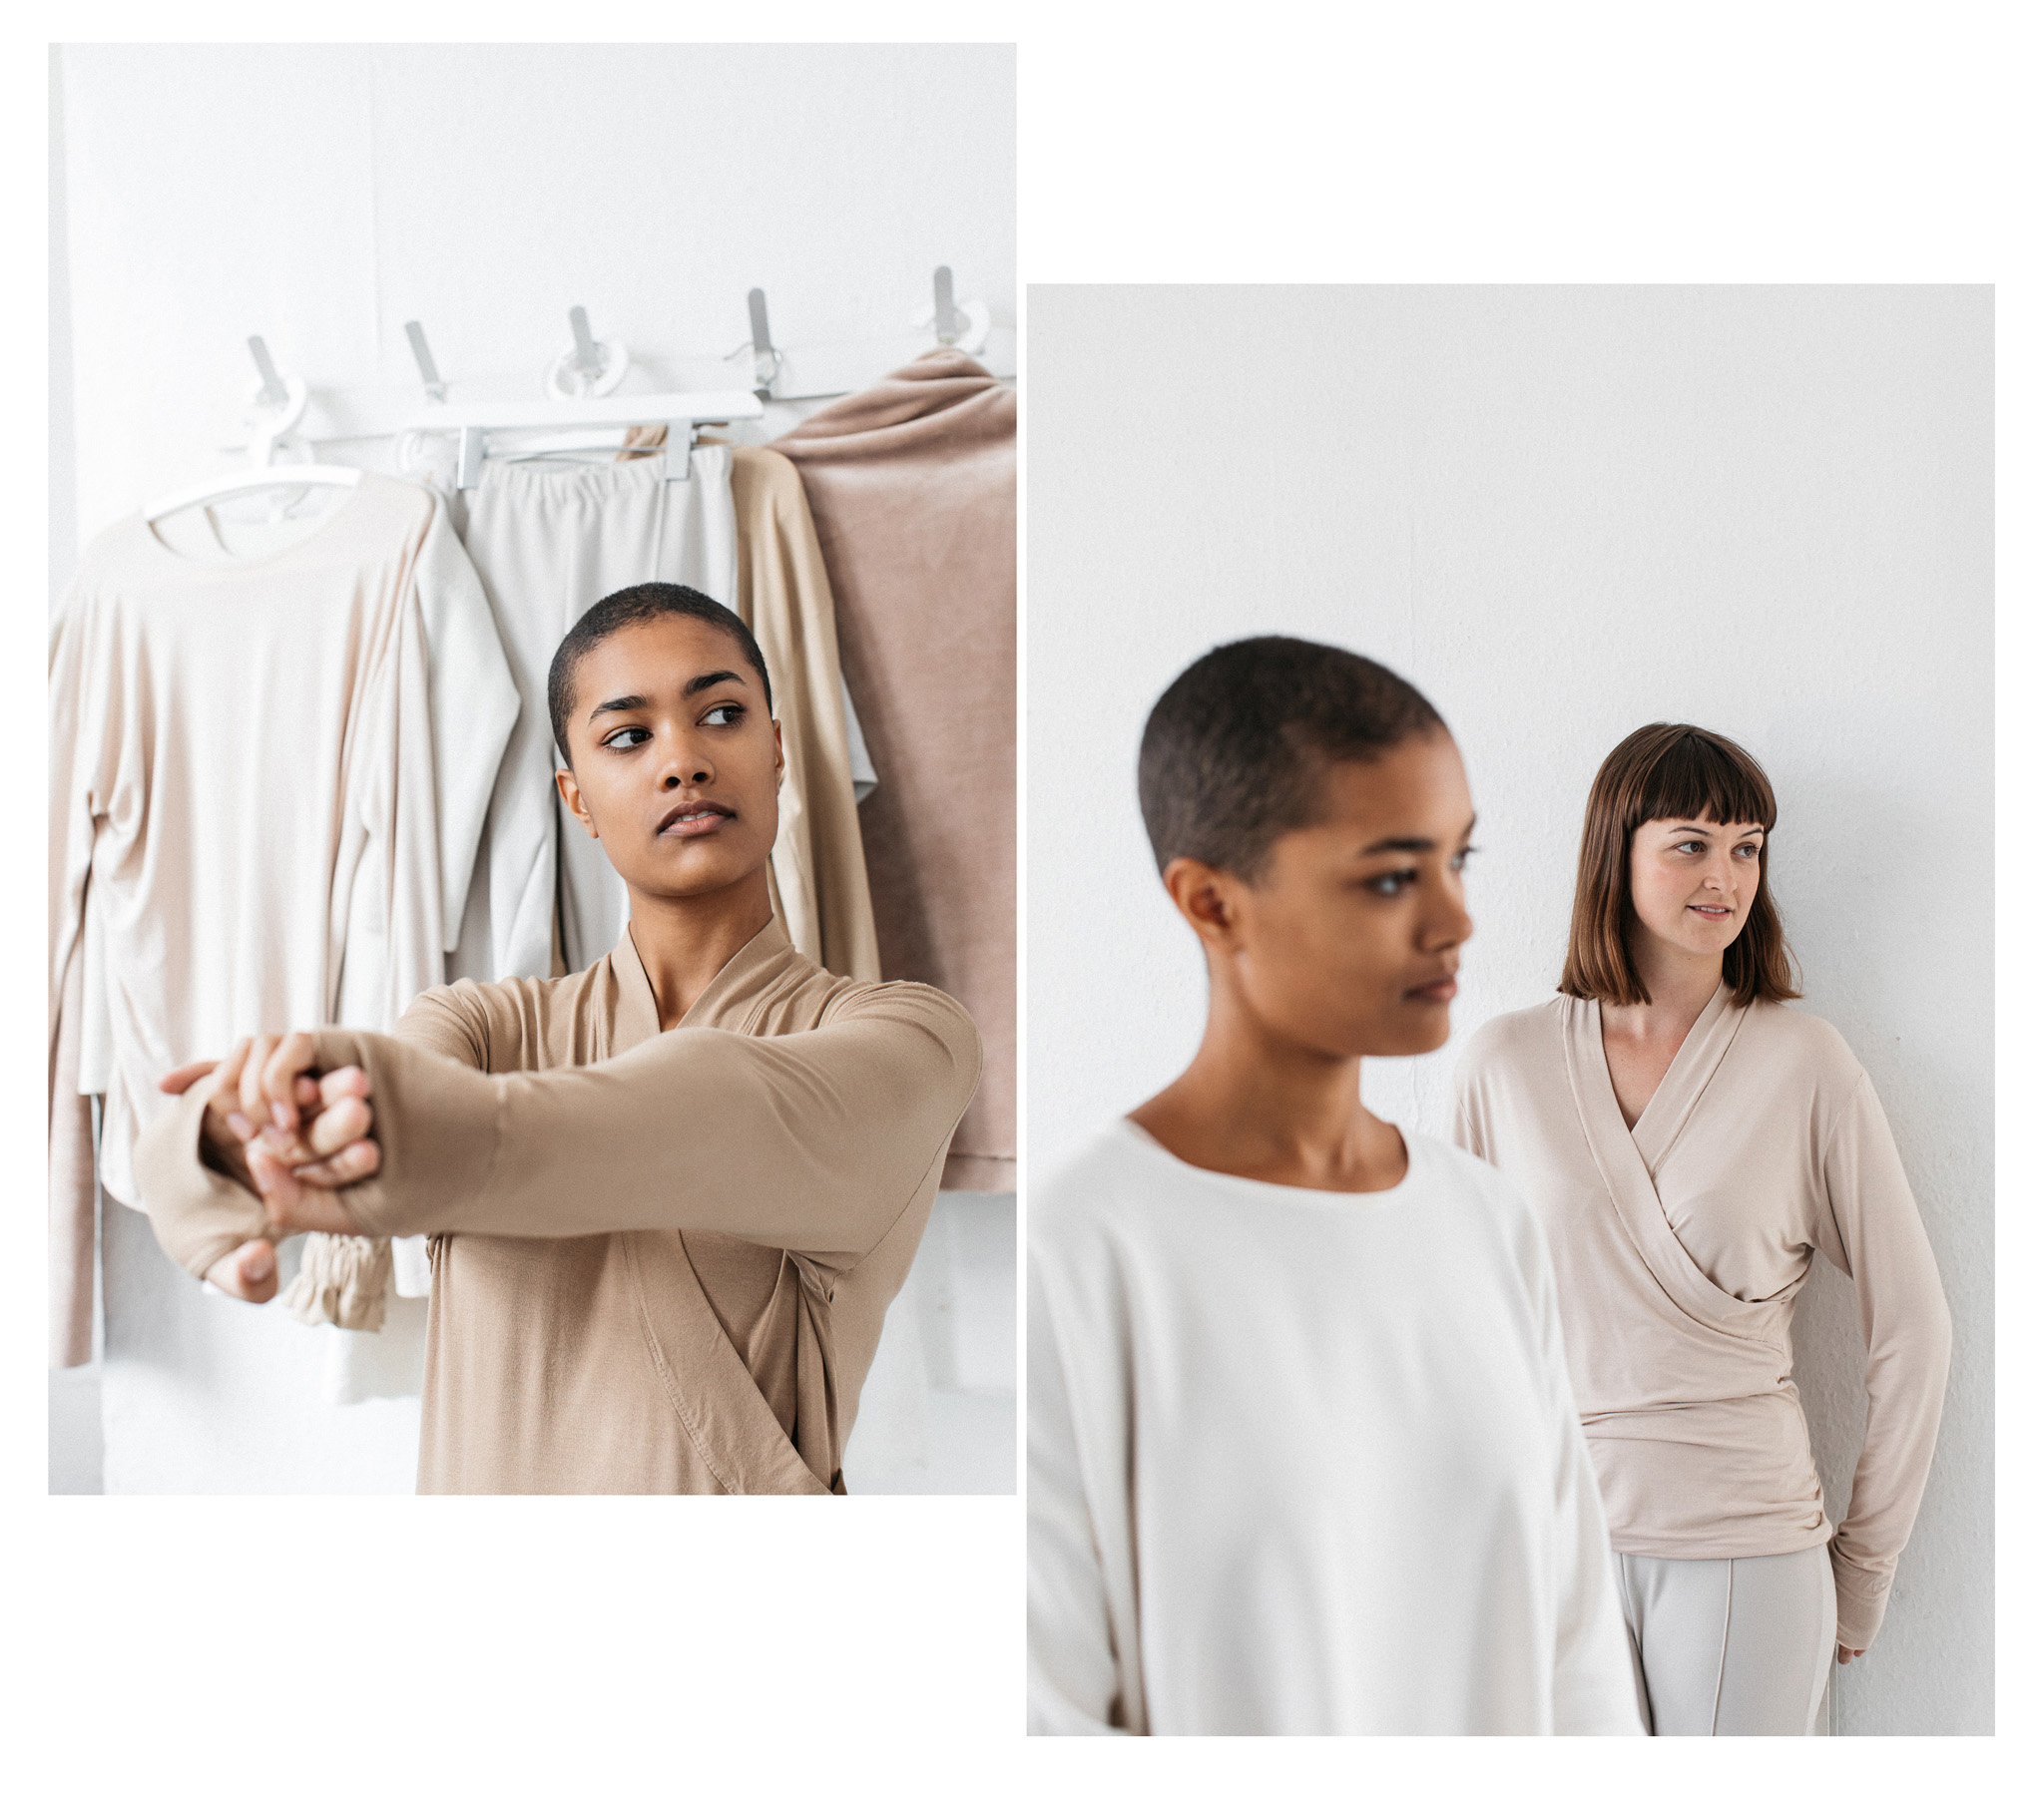 Editorial and lookbook for the Maker's Atelier magazine. The Maker's Atelier provide sewing patterns for a contemporary market. Photographed by Emma Croman in Brighton.